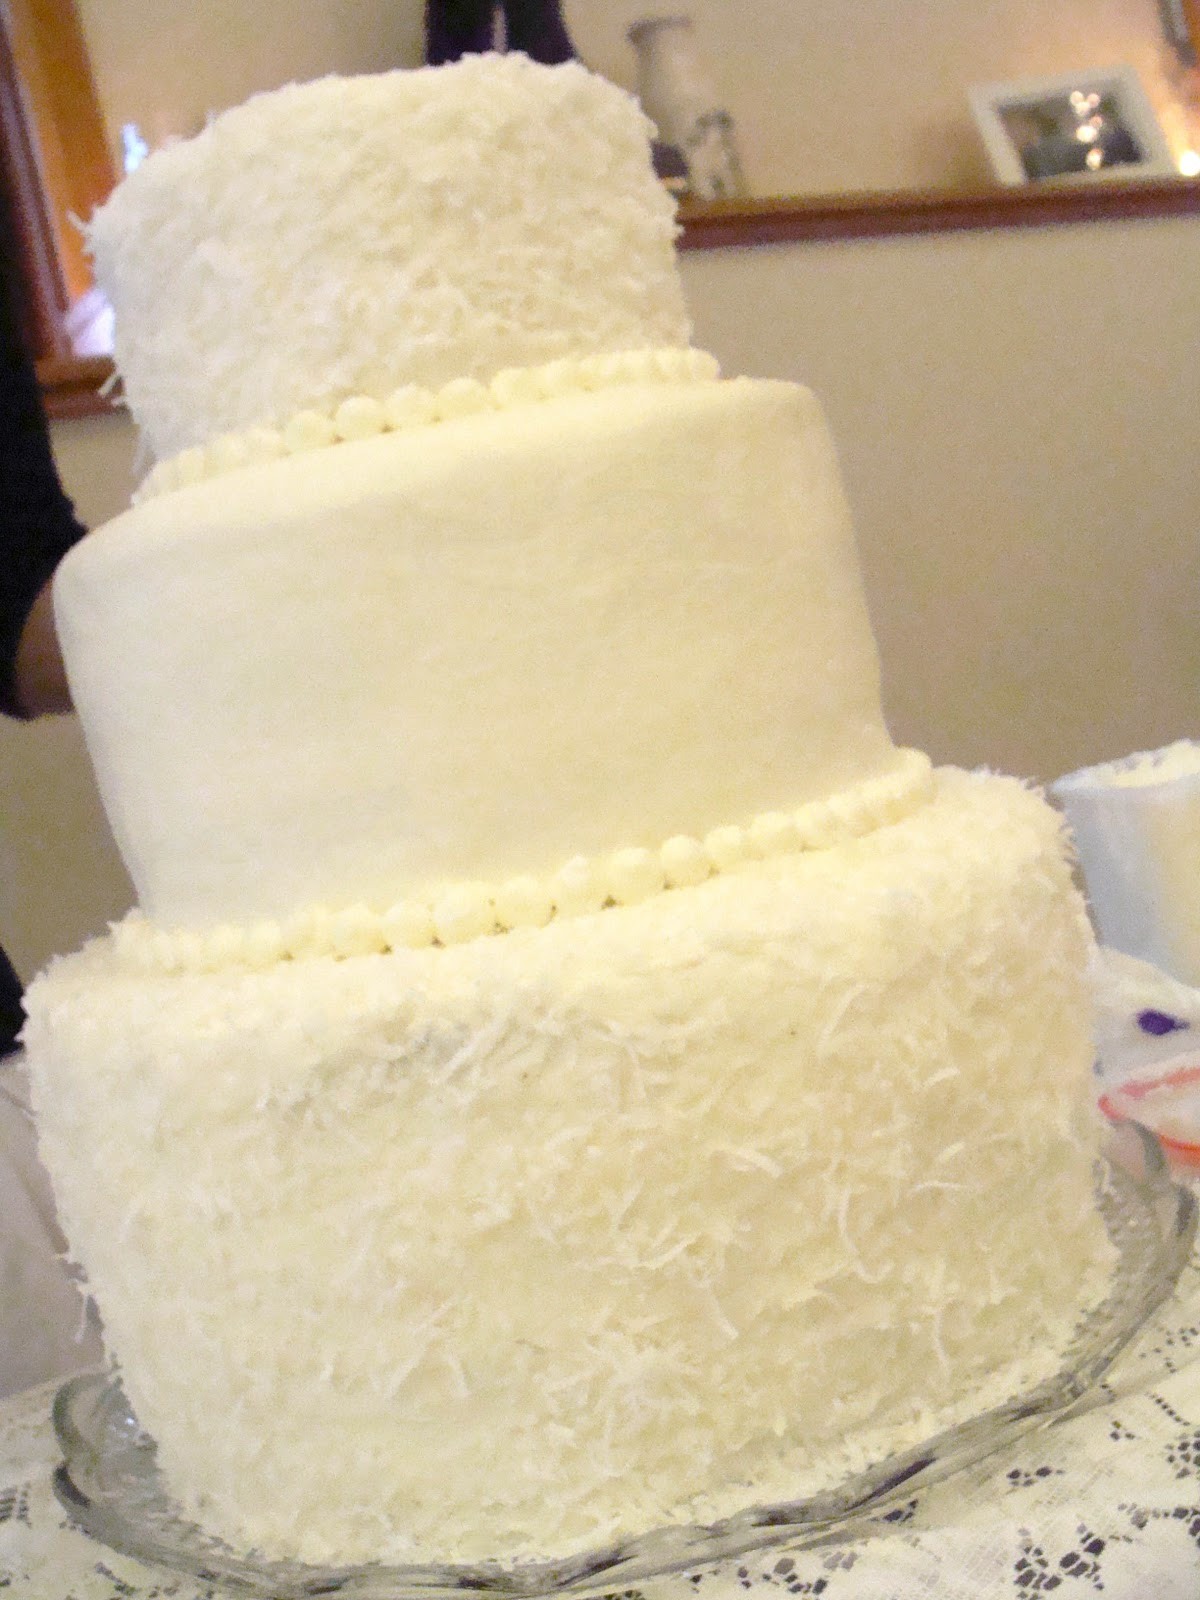 Wedding Cake Icing Recipes  Wedding Cake Frosting Recipe — Dishmaps